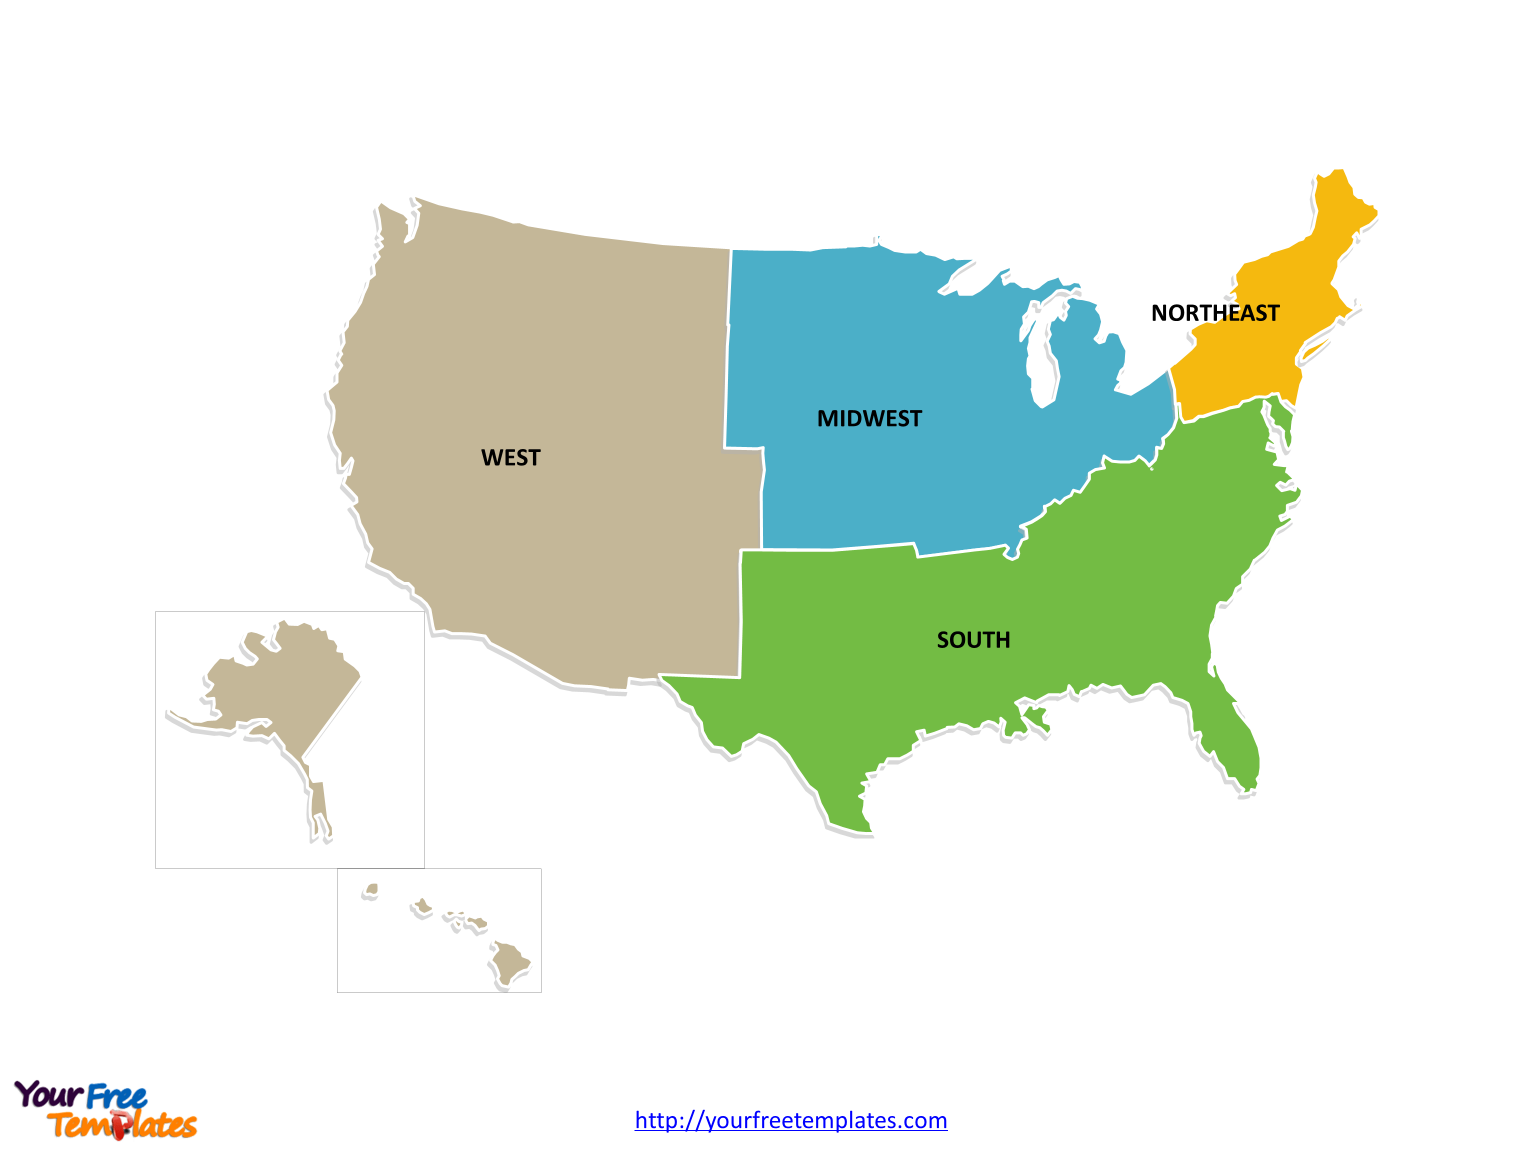 Free USA Region PowerPoint Map Free PowerPoint Templates - Free us map with states labeled